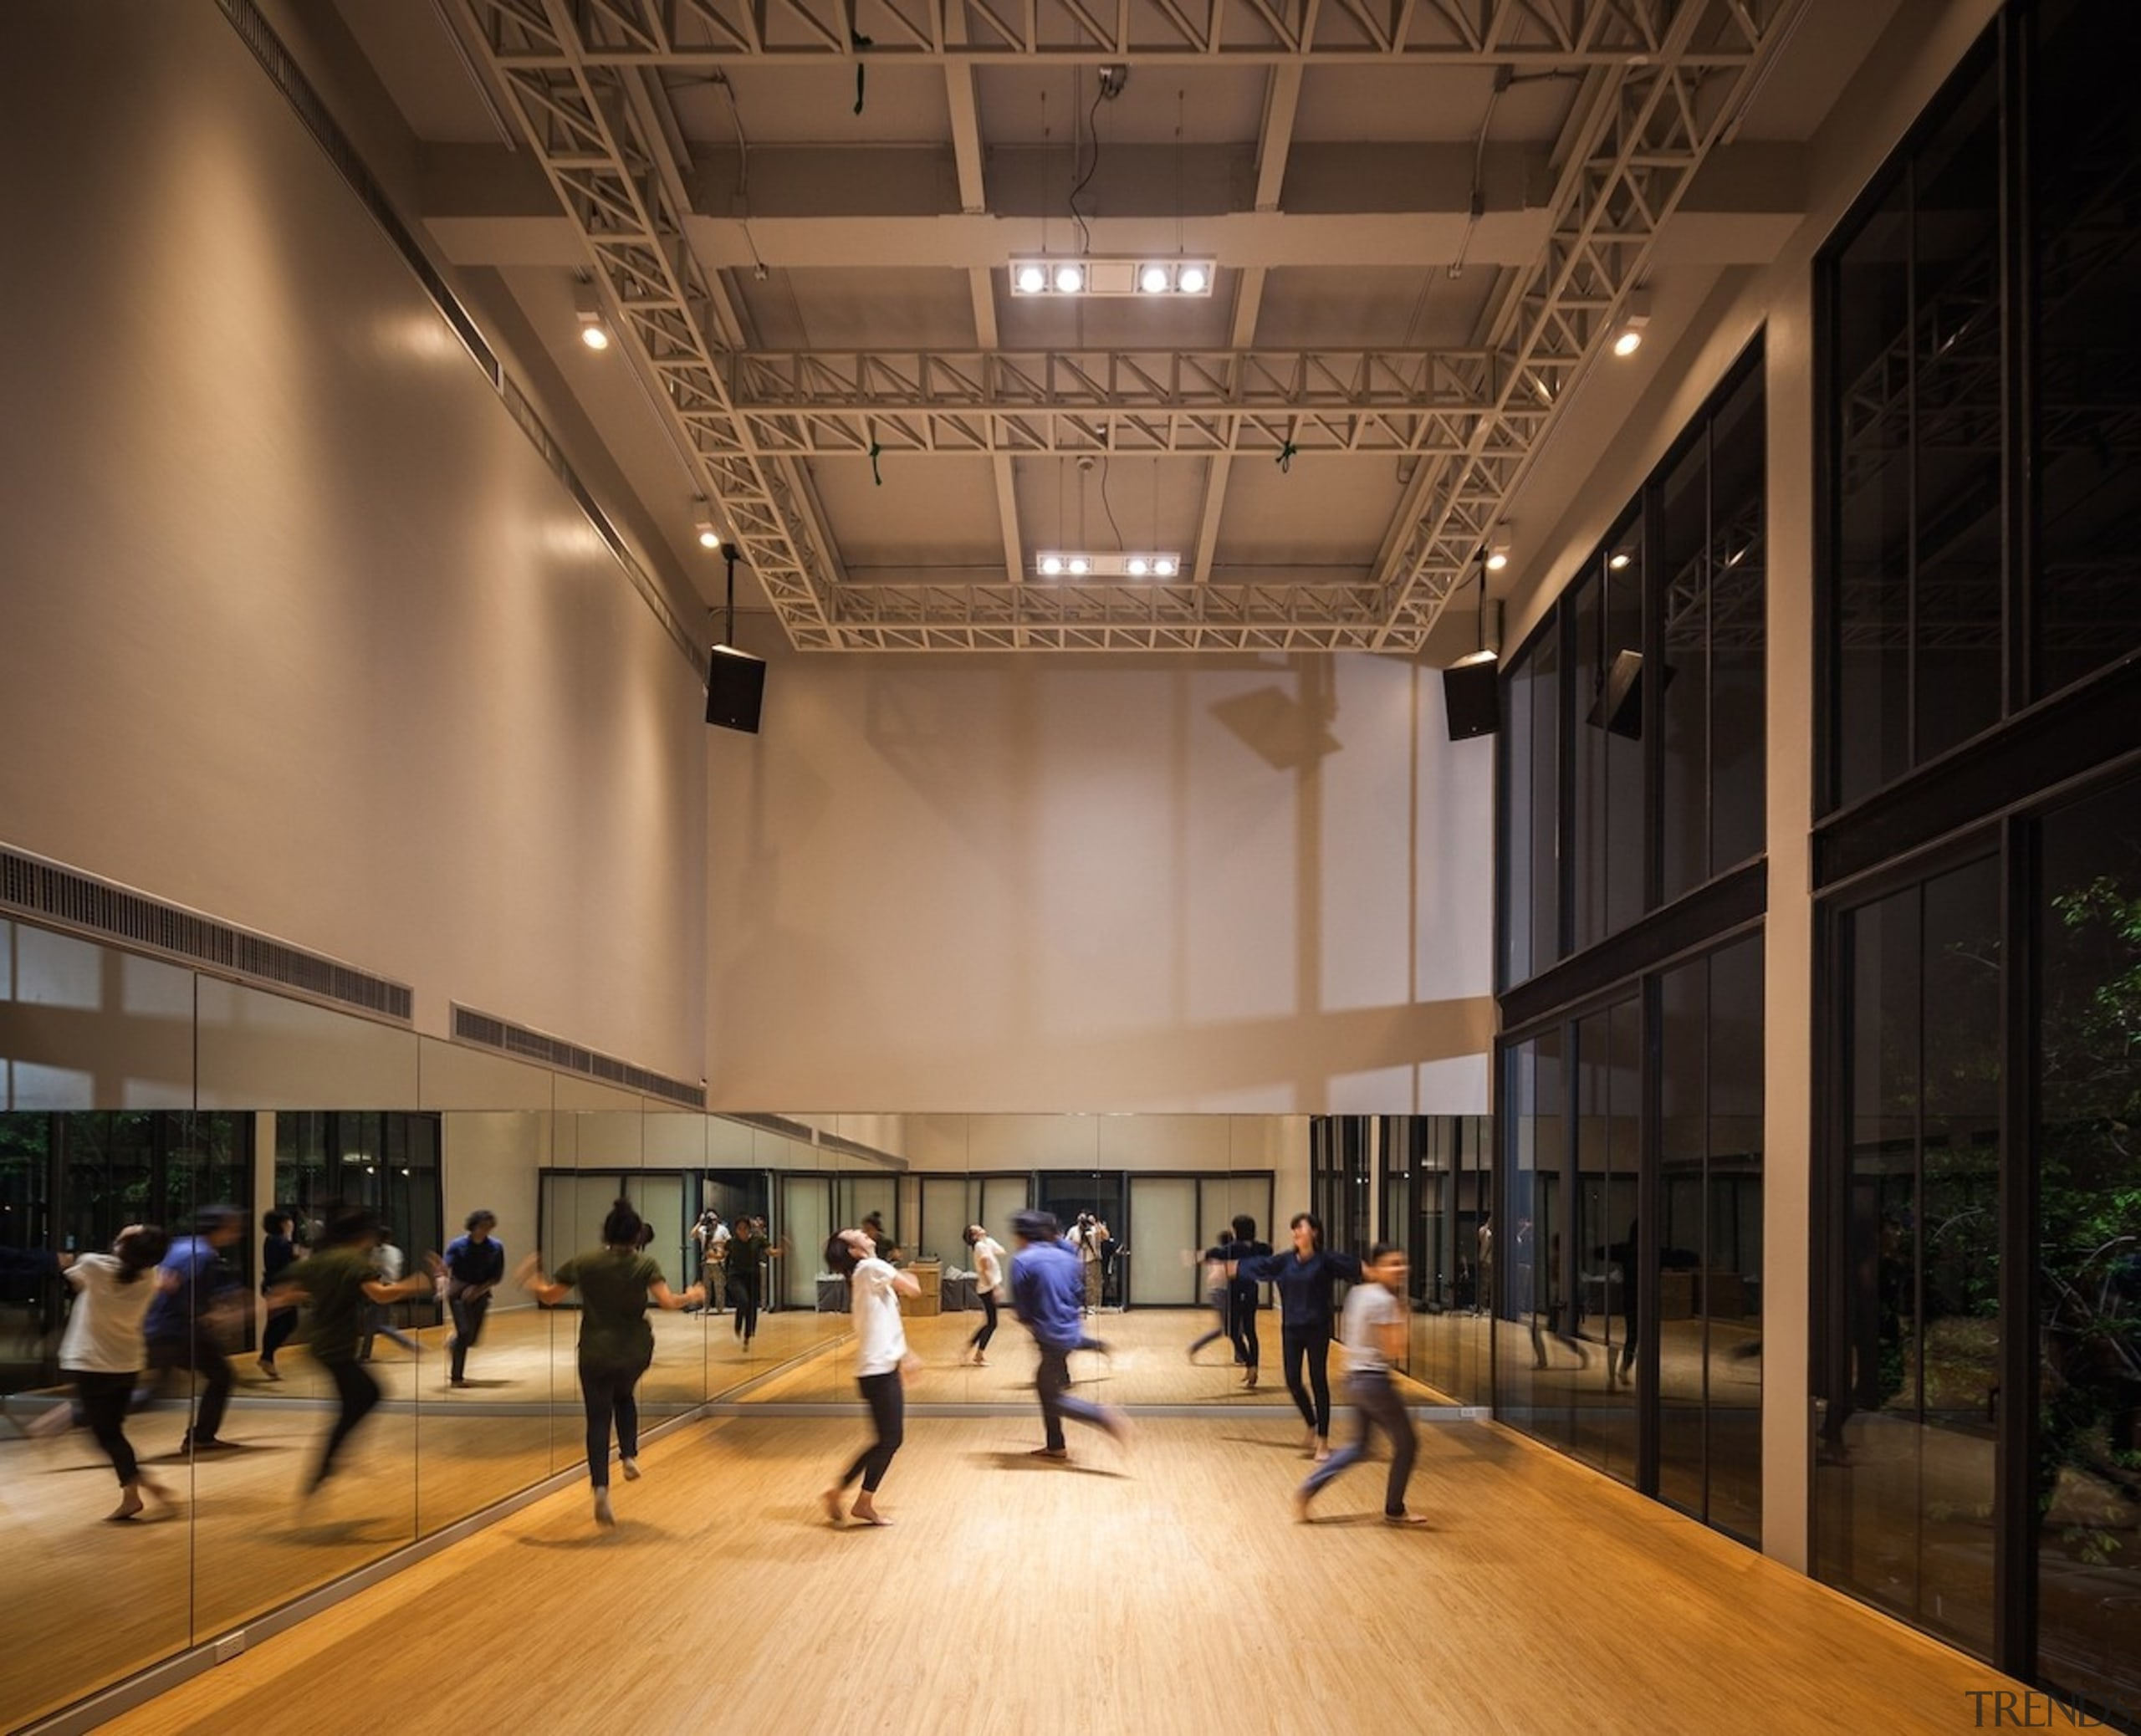 Naiipa 12 - architecture | building | ceiling architecture, building, ceiling, daylighting, lobby, performing arts center, tourist attraction, brown, black